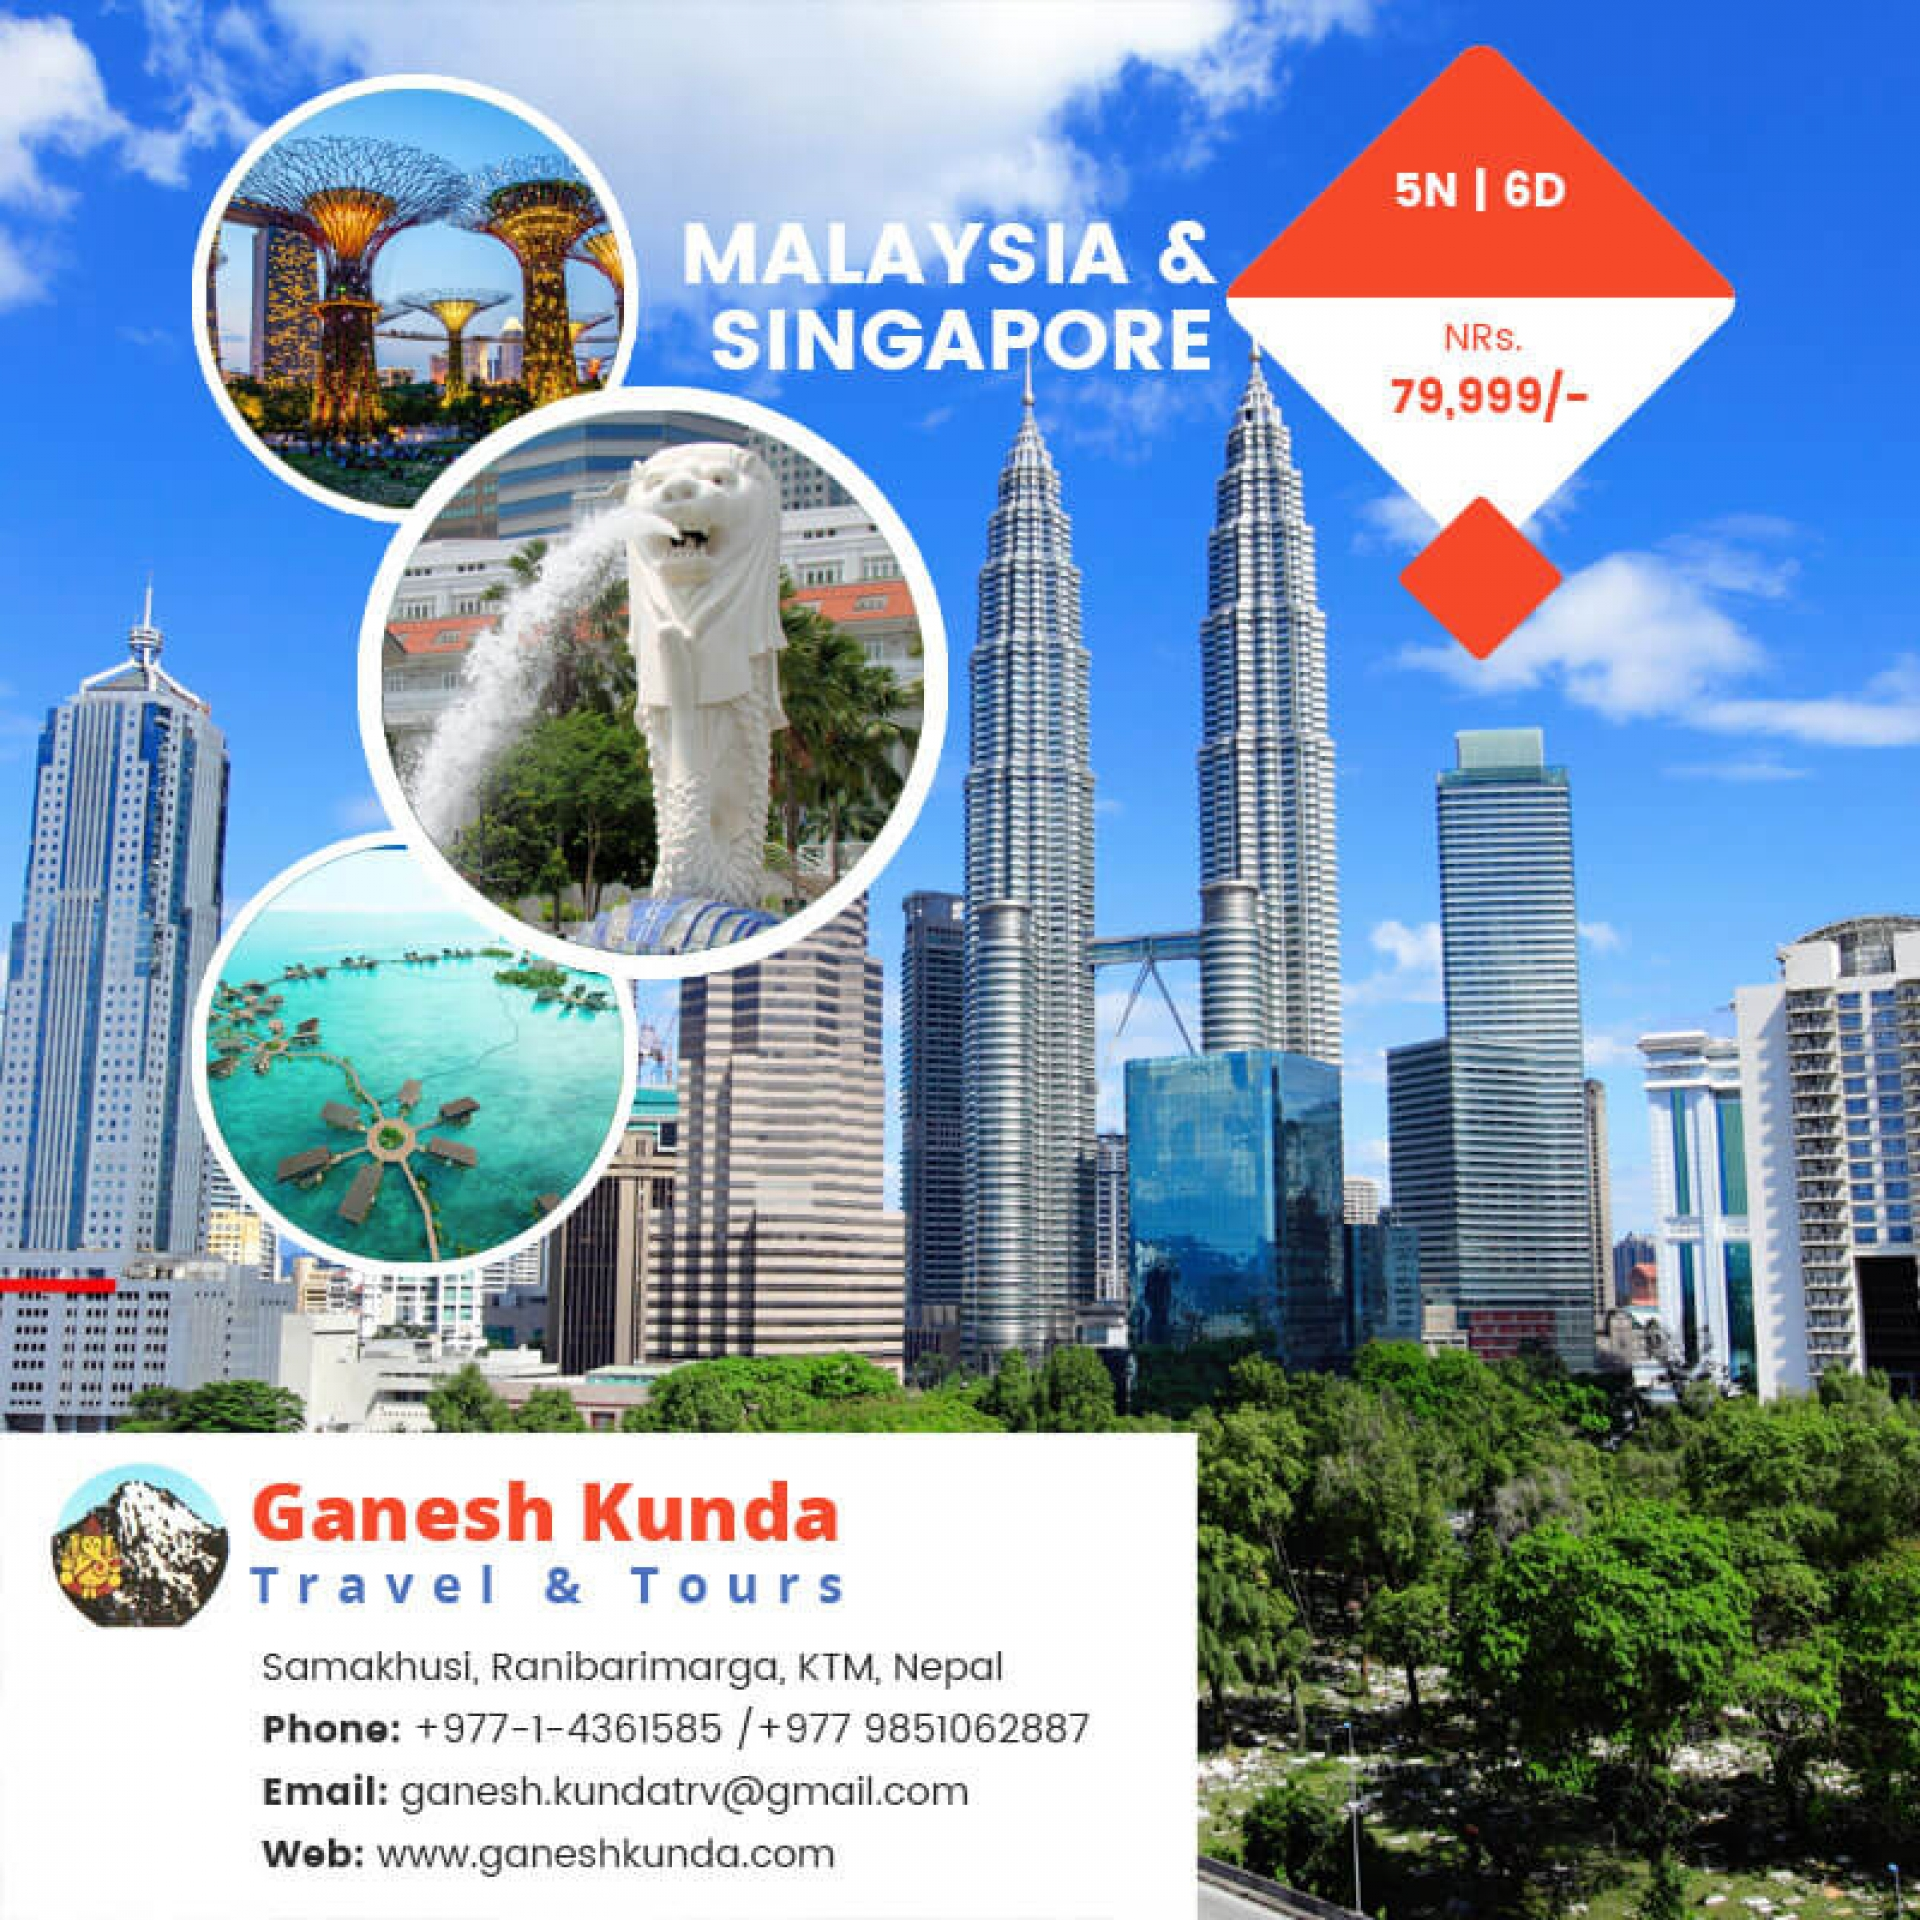 Singapore Malaysia: Special Offer For Malaysia & Singapore